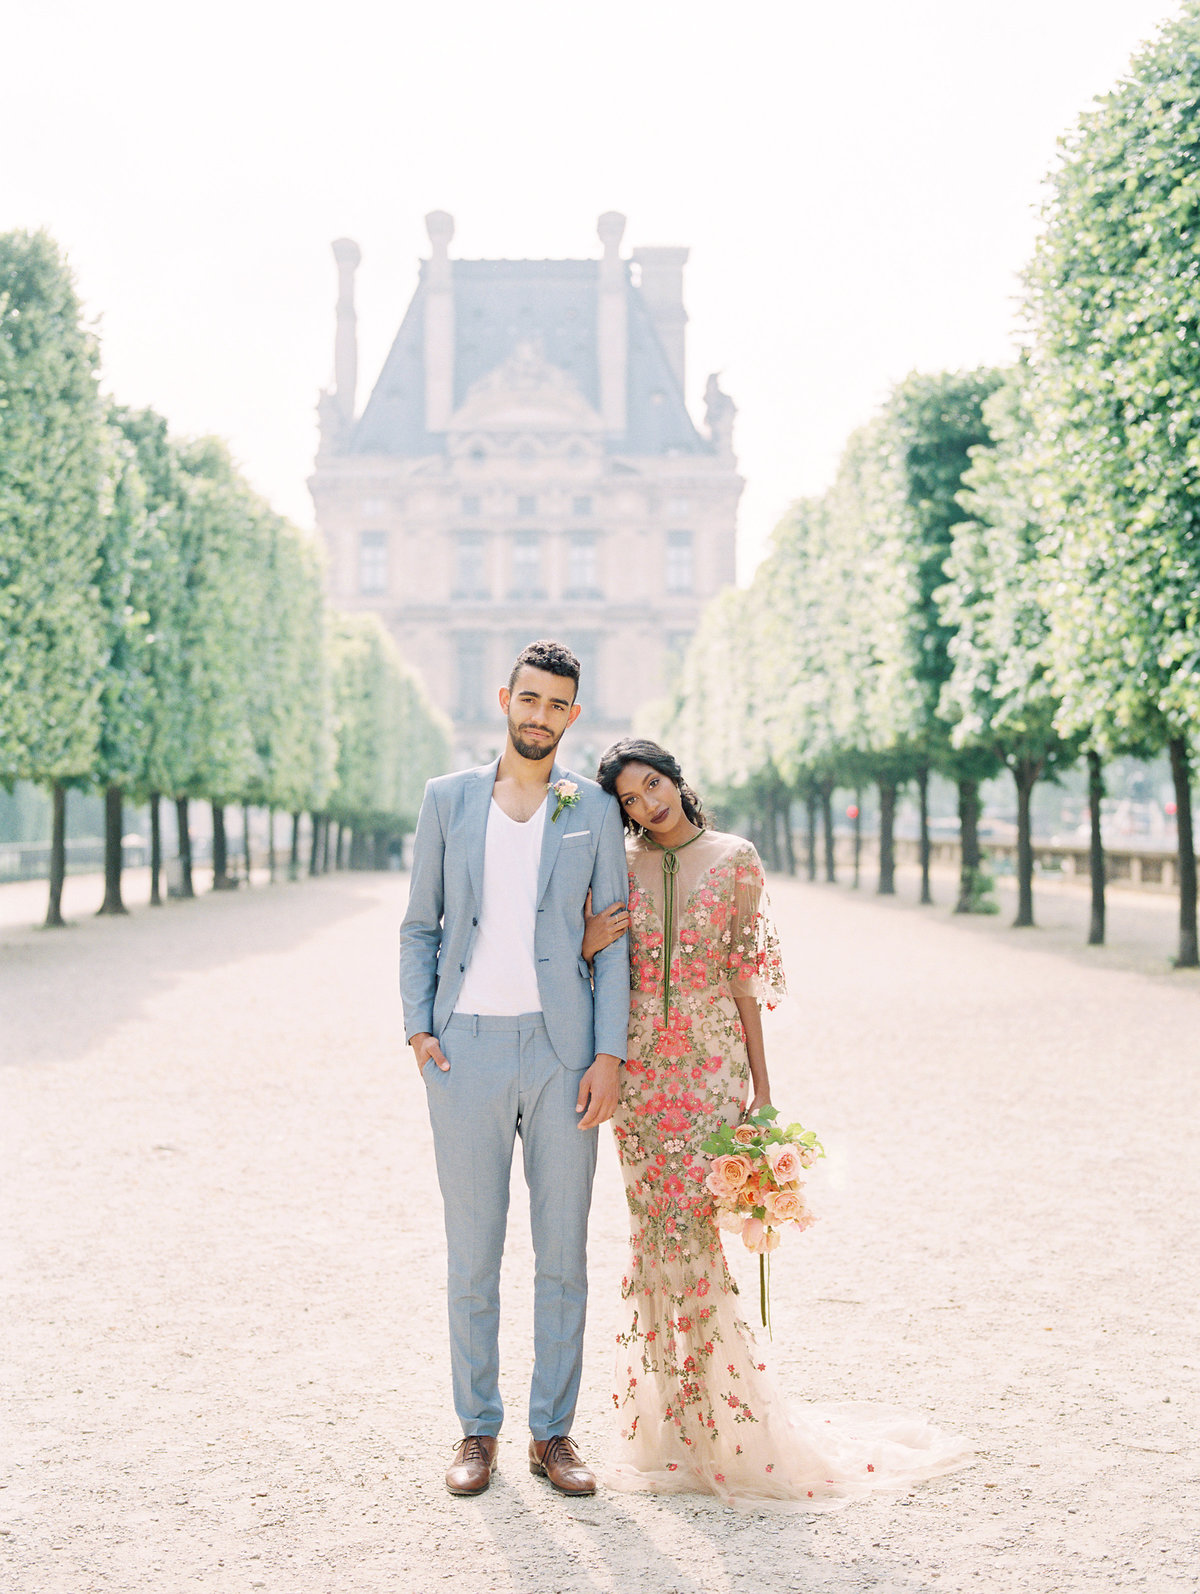 Marchesa Gown -Engagement in Paris, France at the Tuileries